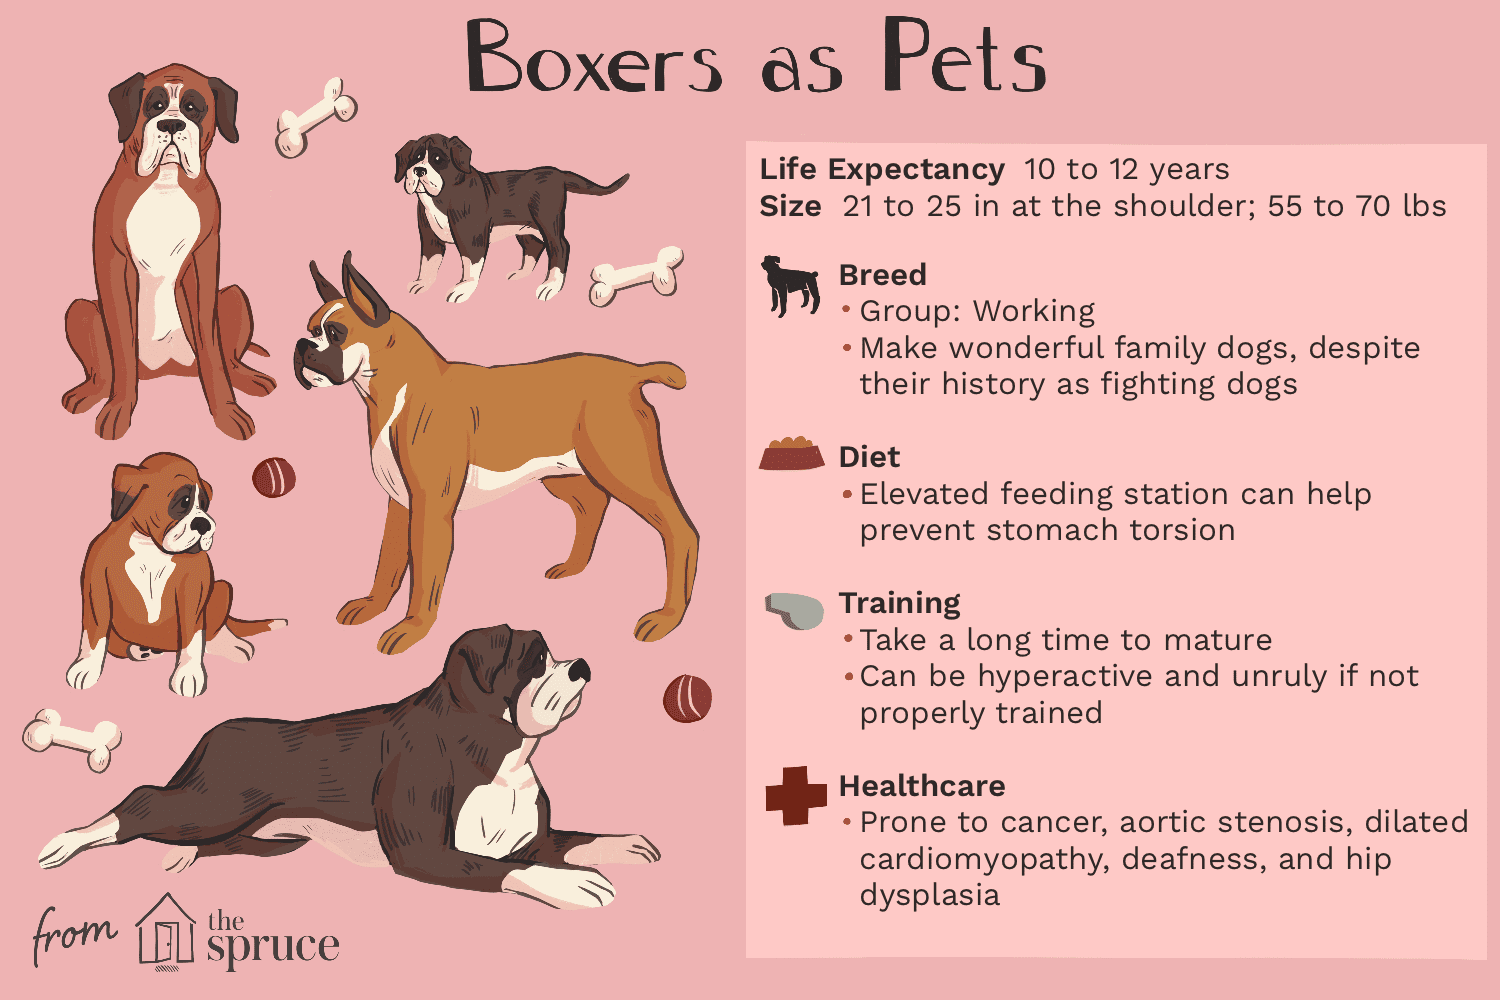 boxers as pets illustration